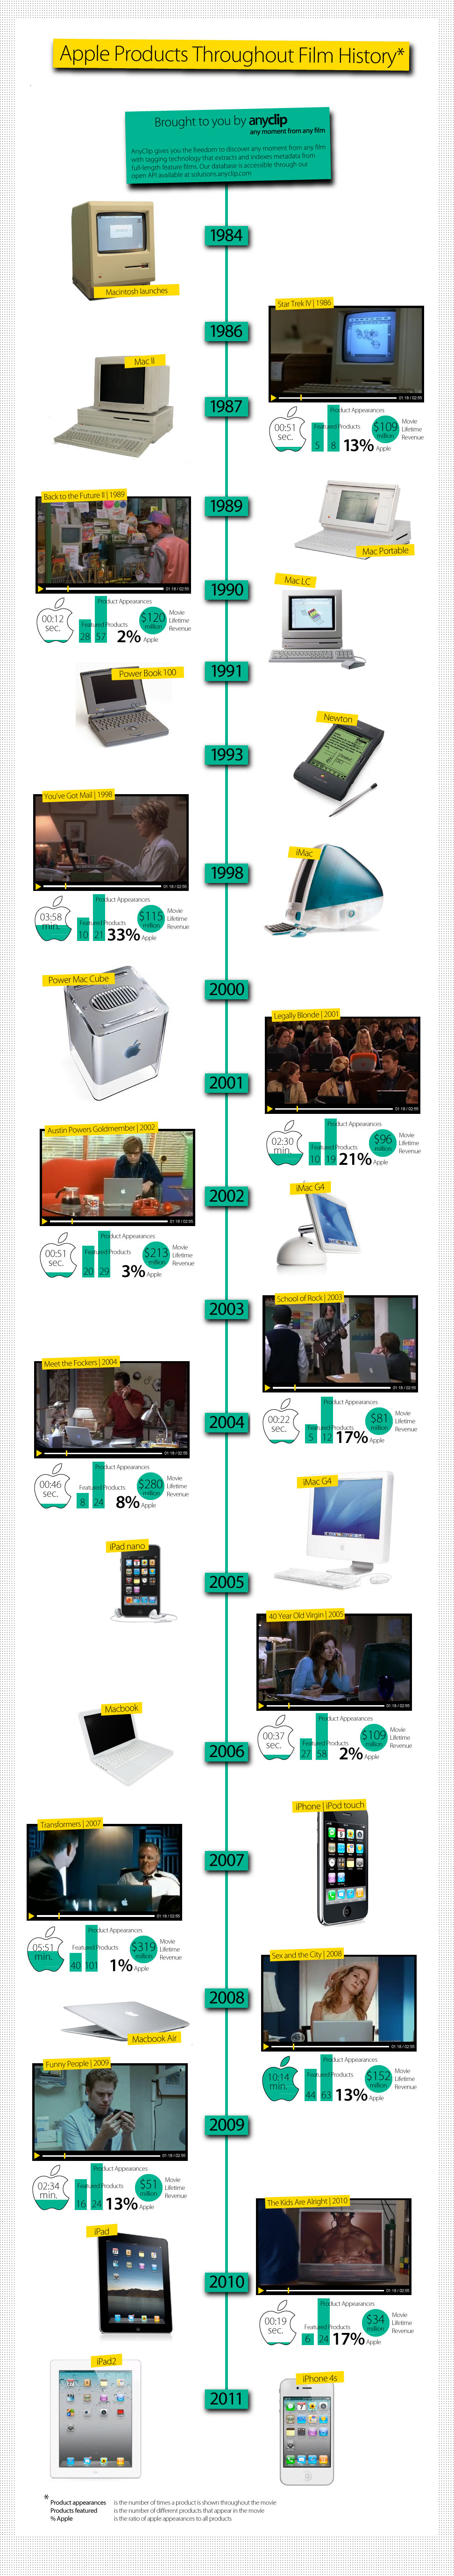 Apple In Movies: Time On Screen Historic Timeline [Infographic]